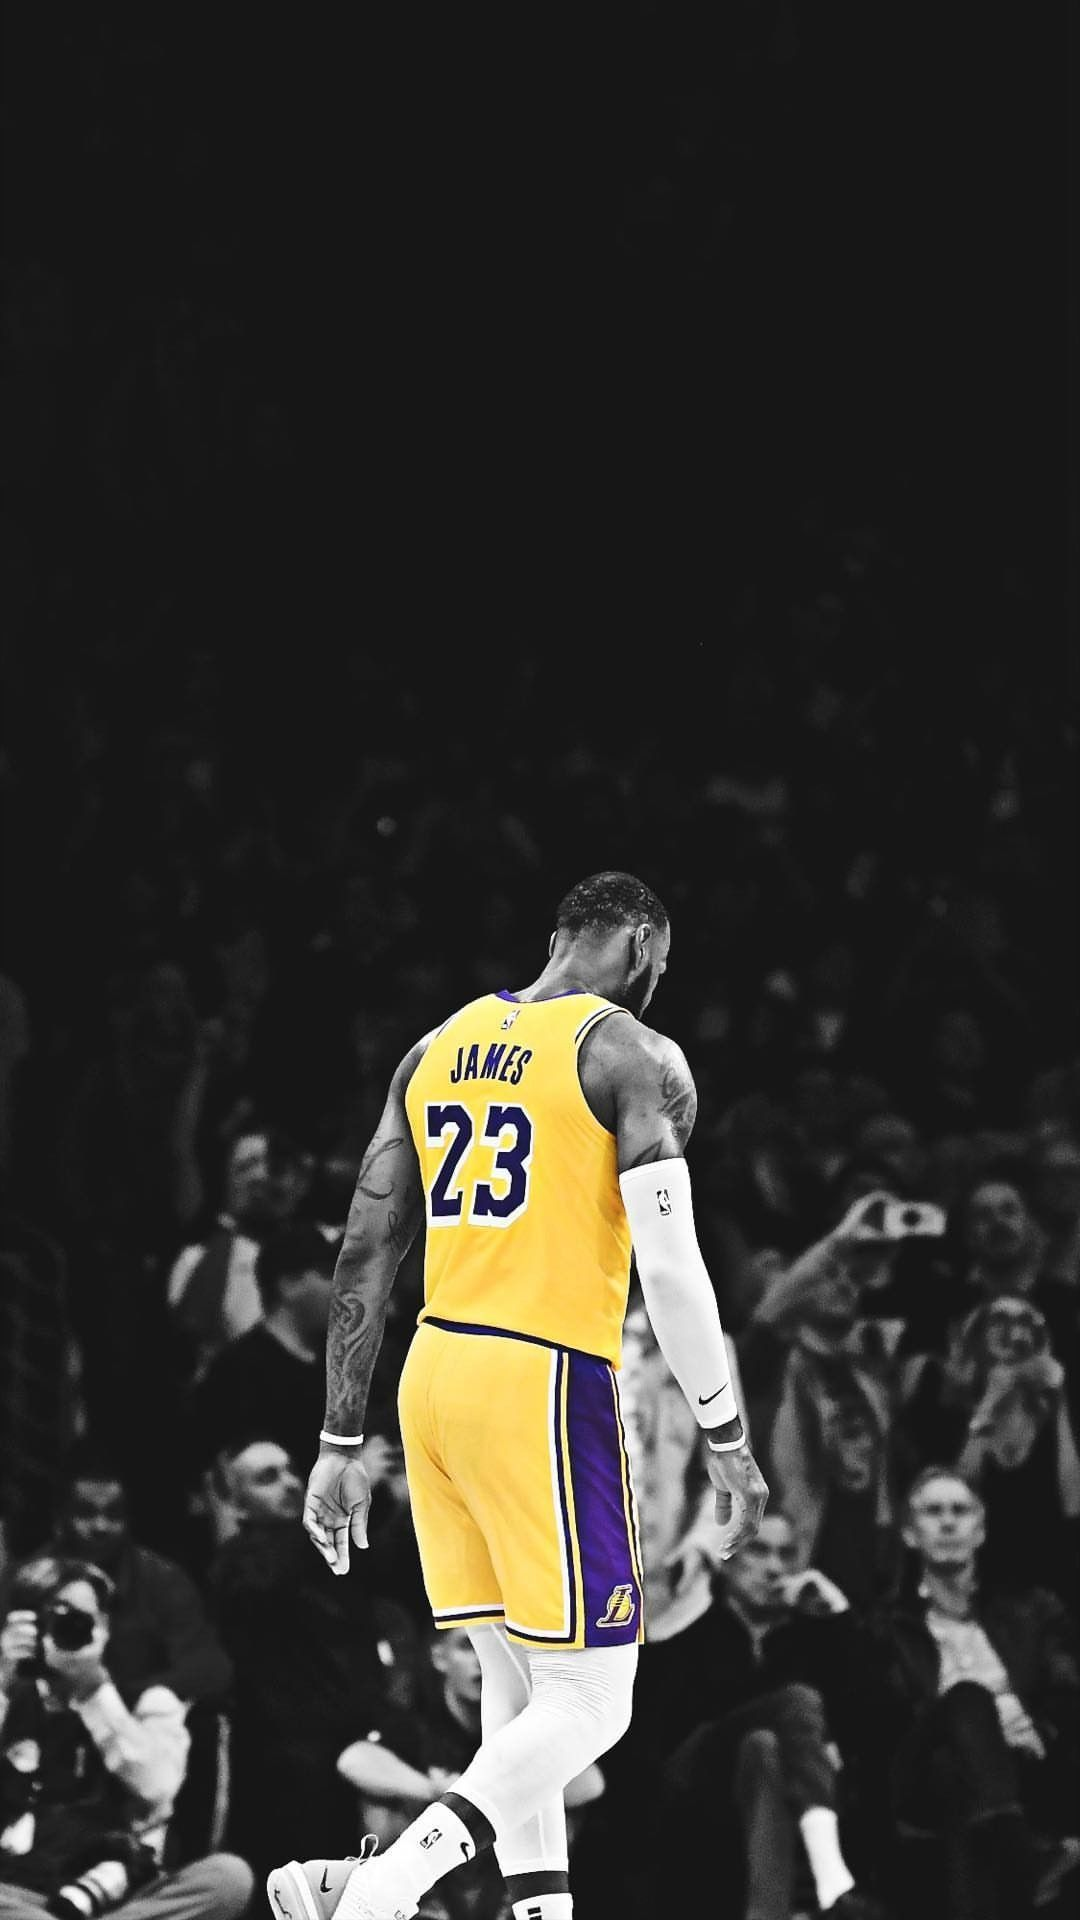 Lebron James Hd Wallpaper Android In 2020 Lebron James Lakers Lebron James Wallpapers Lakers Wallpaper